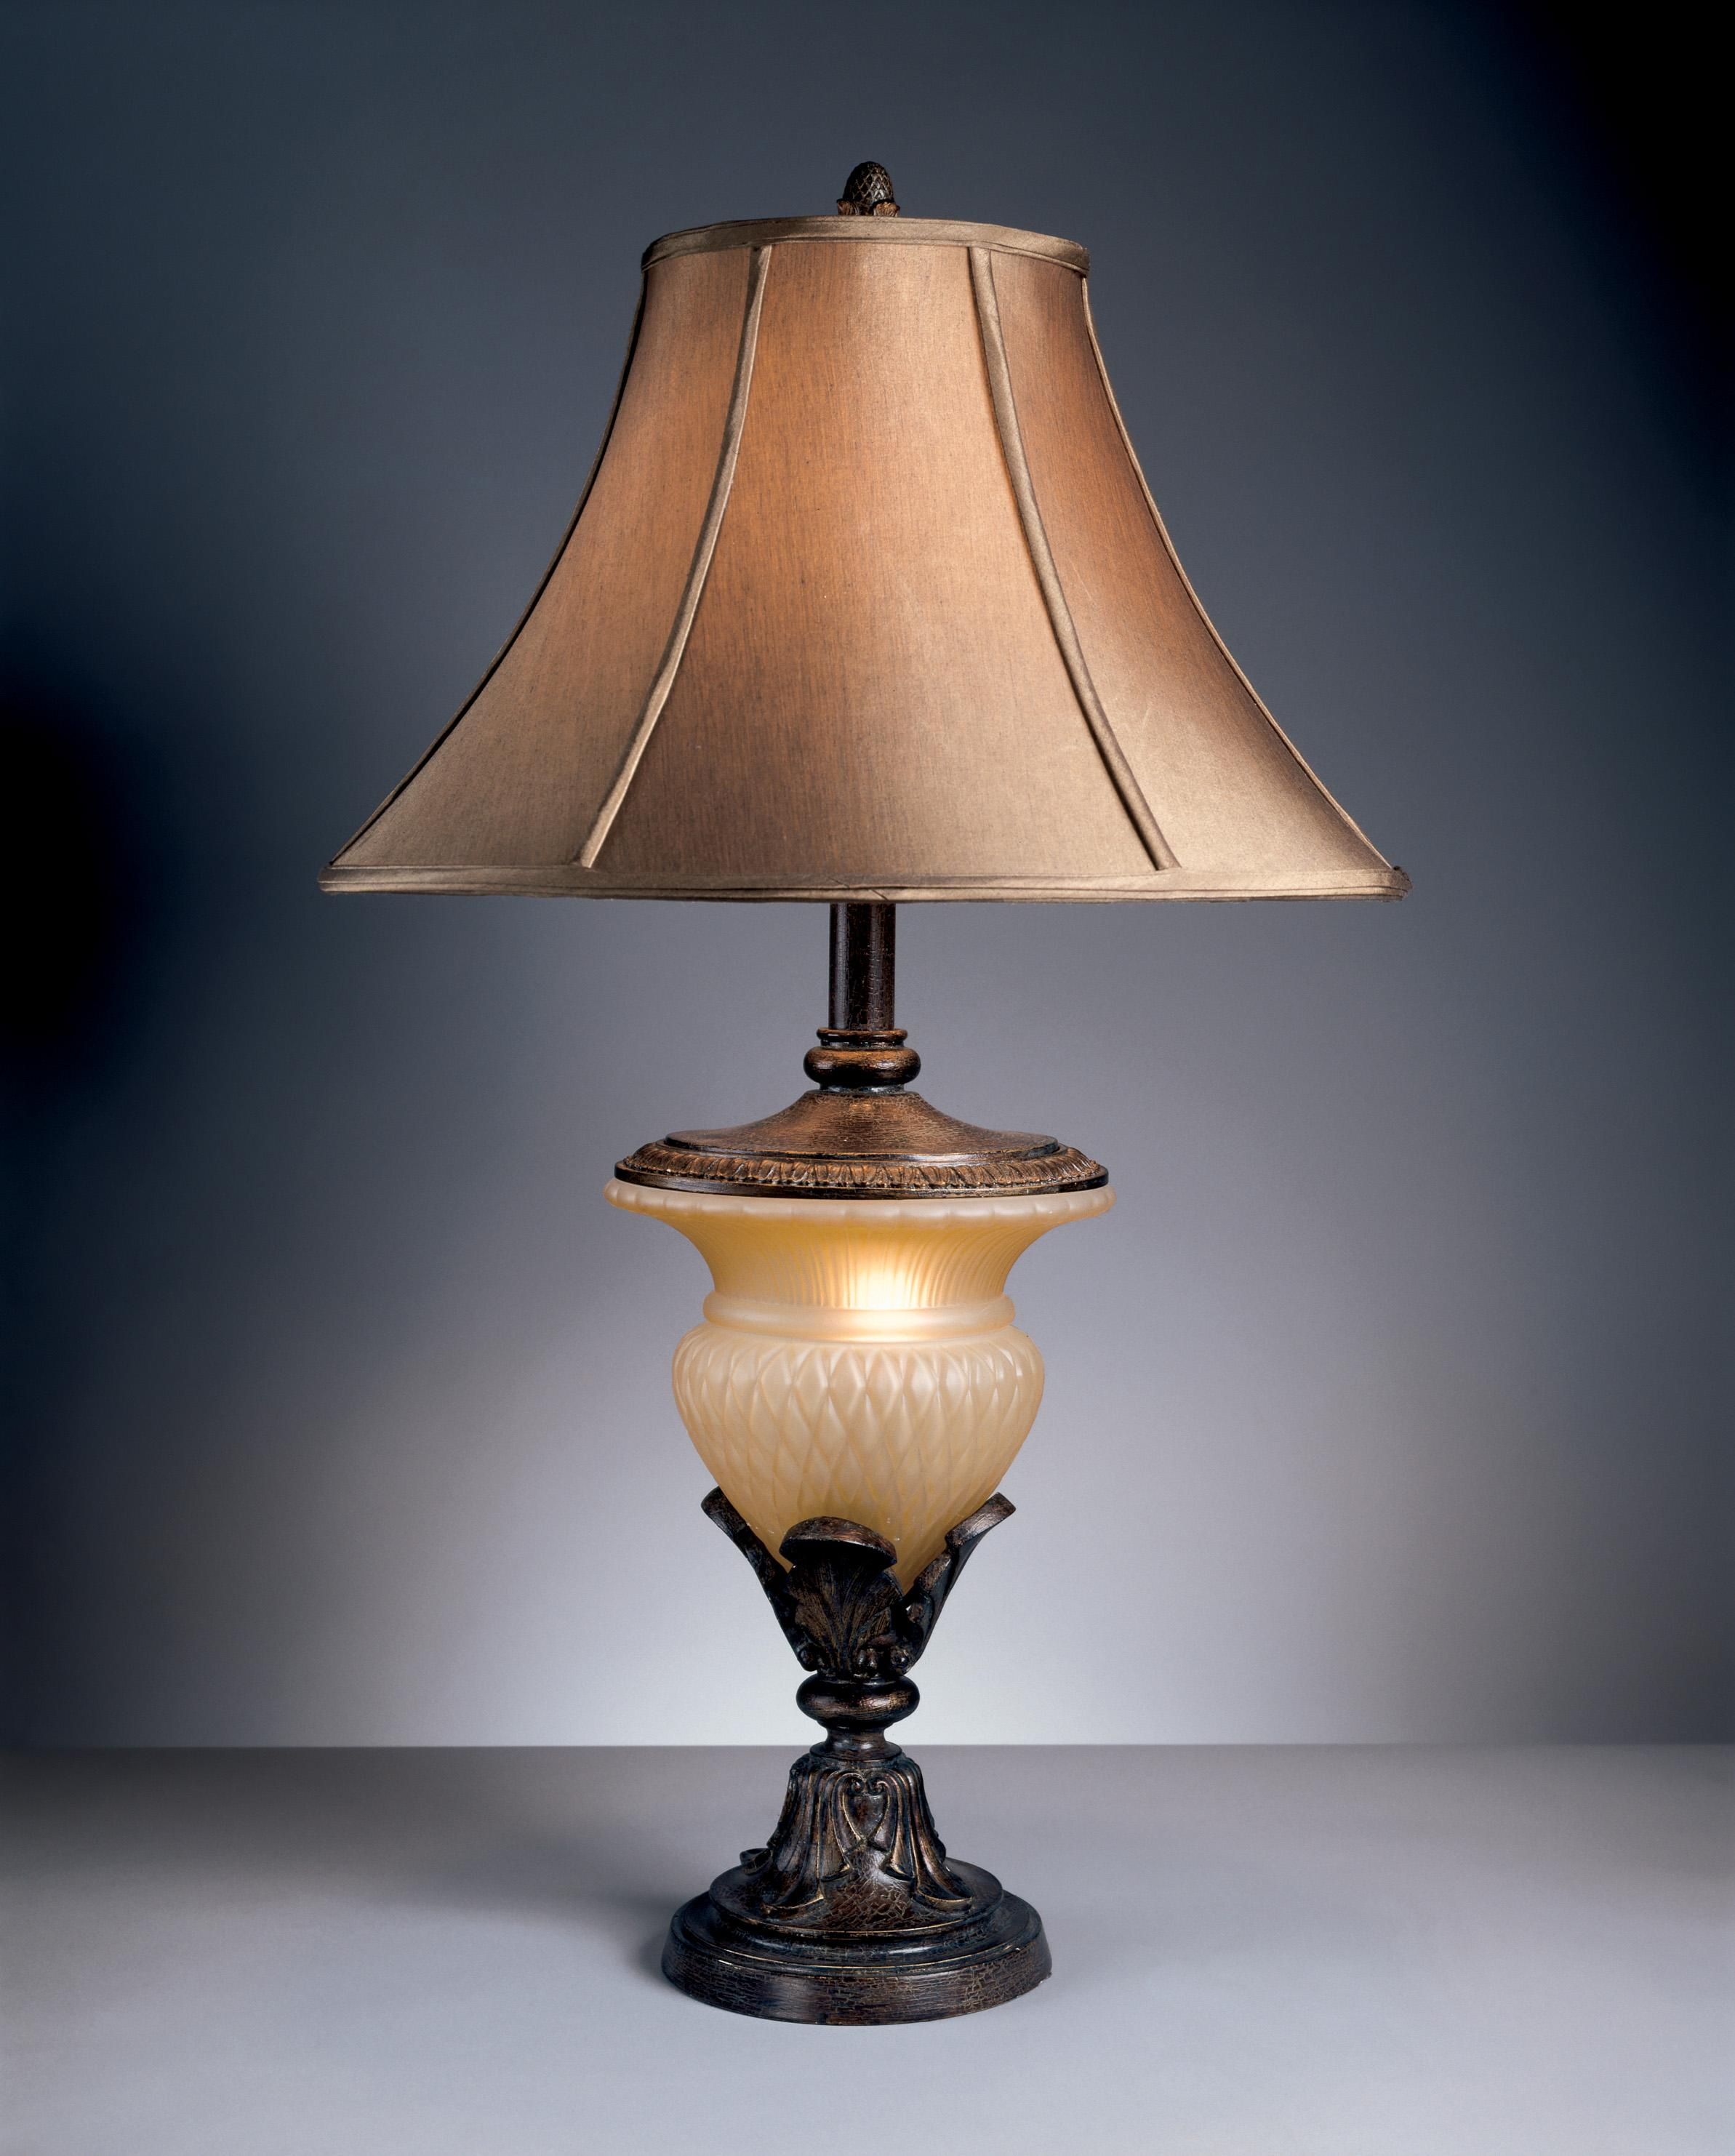 Signature Design by Ashley Lamps - Traditional Classics Danielle pair of lamps - Item Number: L530944